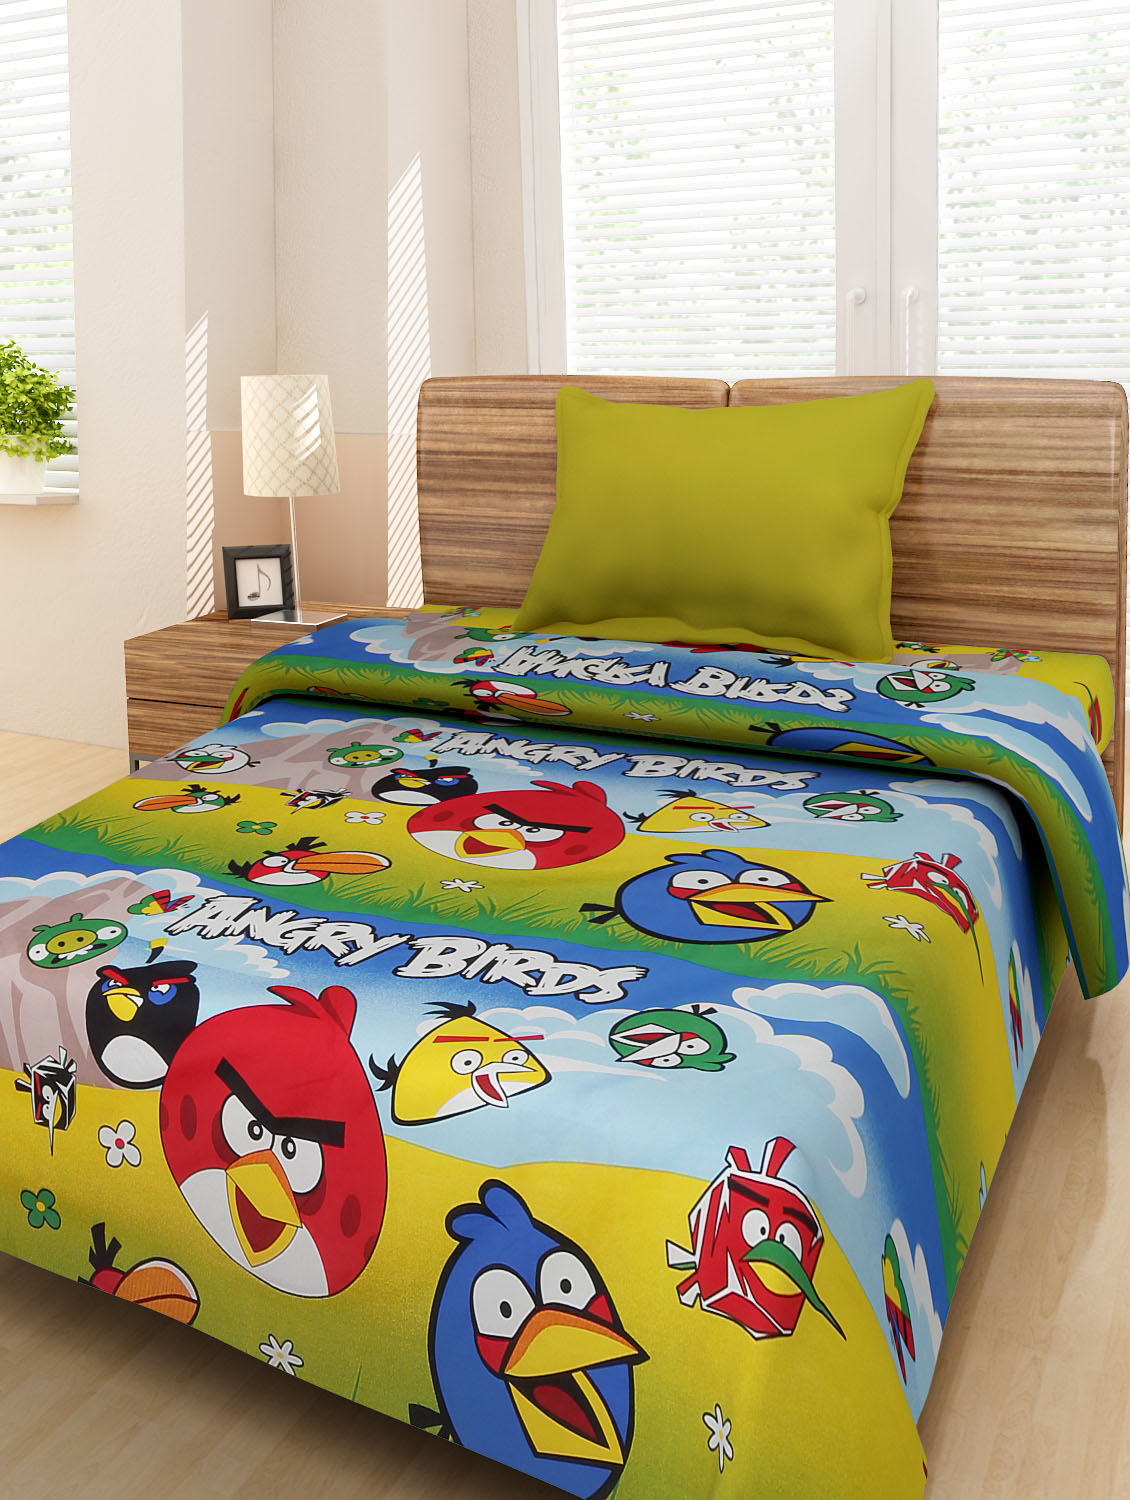 Buy Multicolored Angry Bird Single Bedsheet Set By Homefab India   Online  Shopping For Bedsheets In India | 9651257